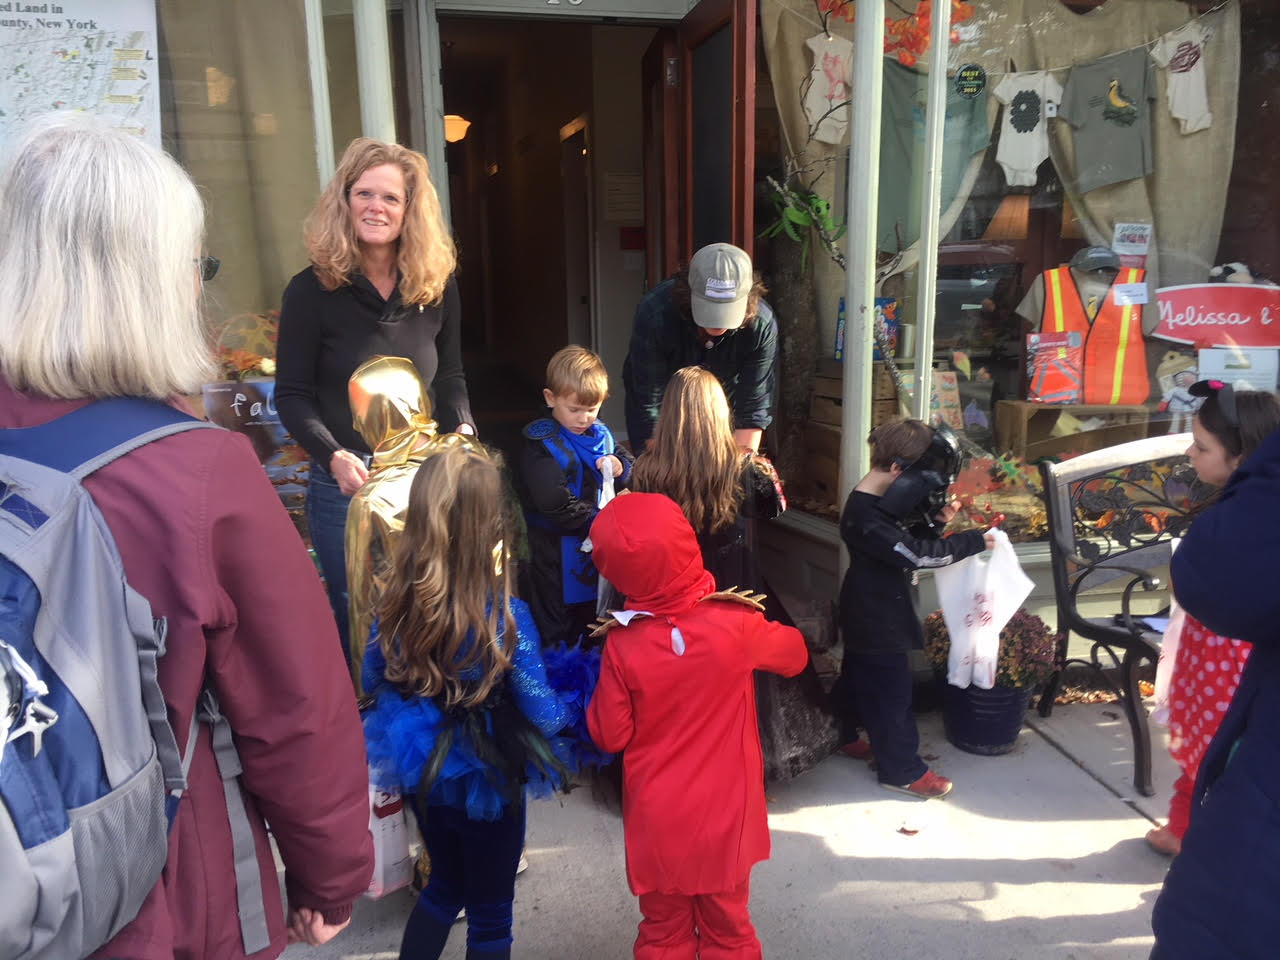 Trick-or-treating on Main Street in the village of Chatham, NY